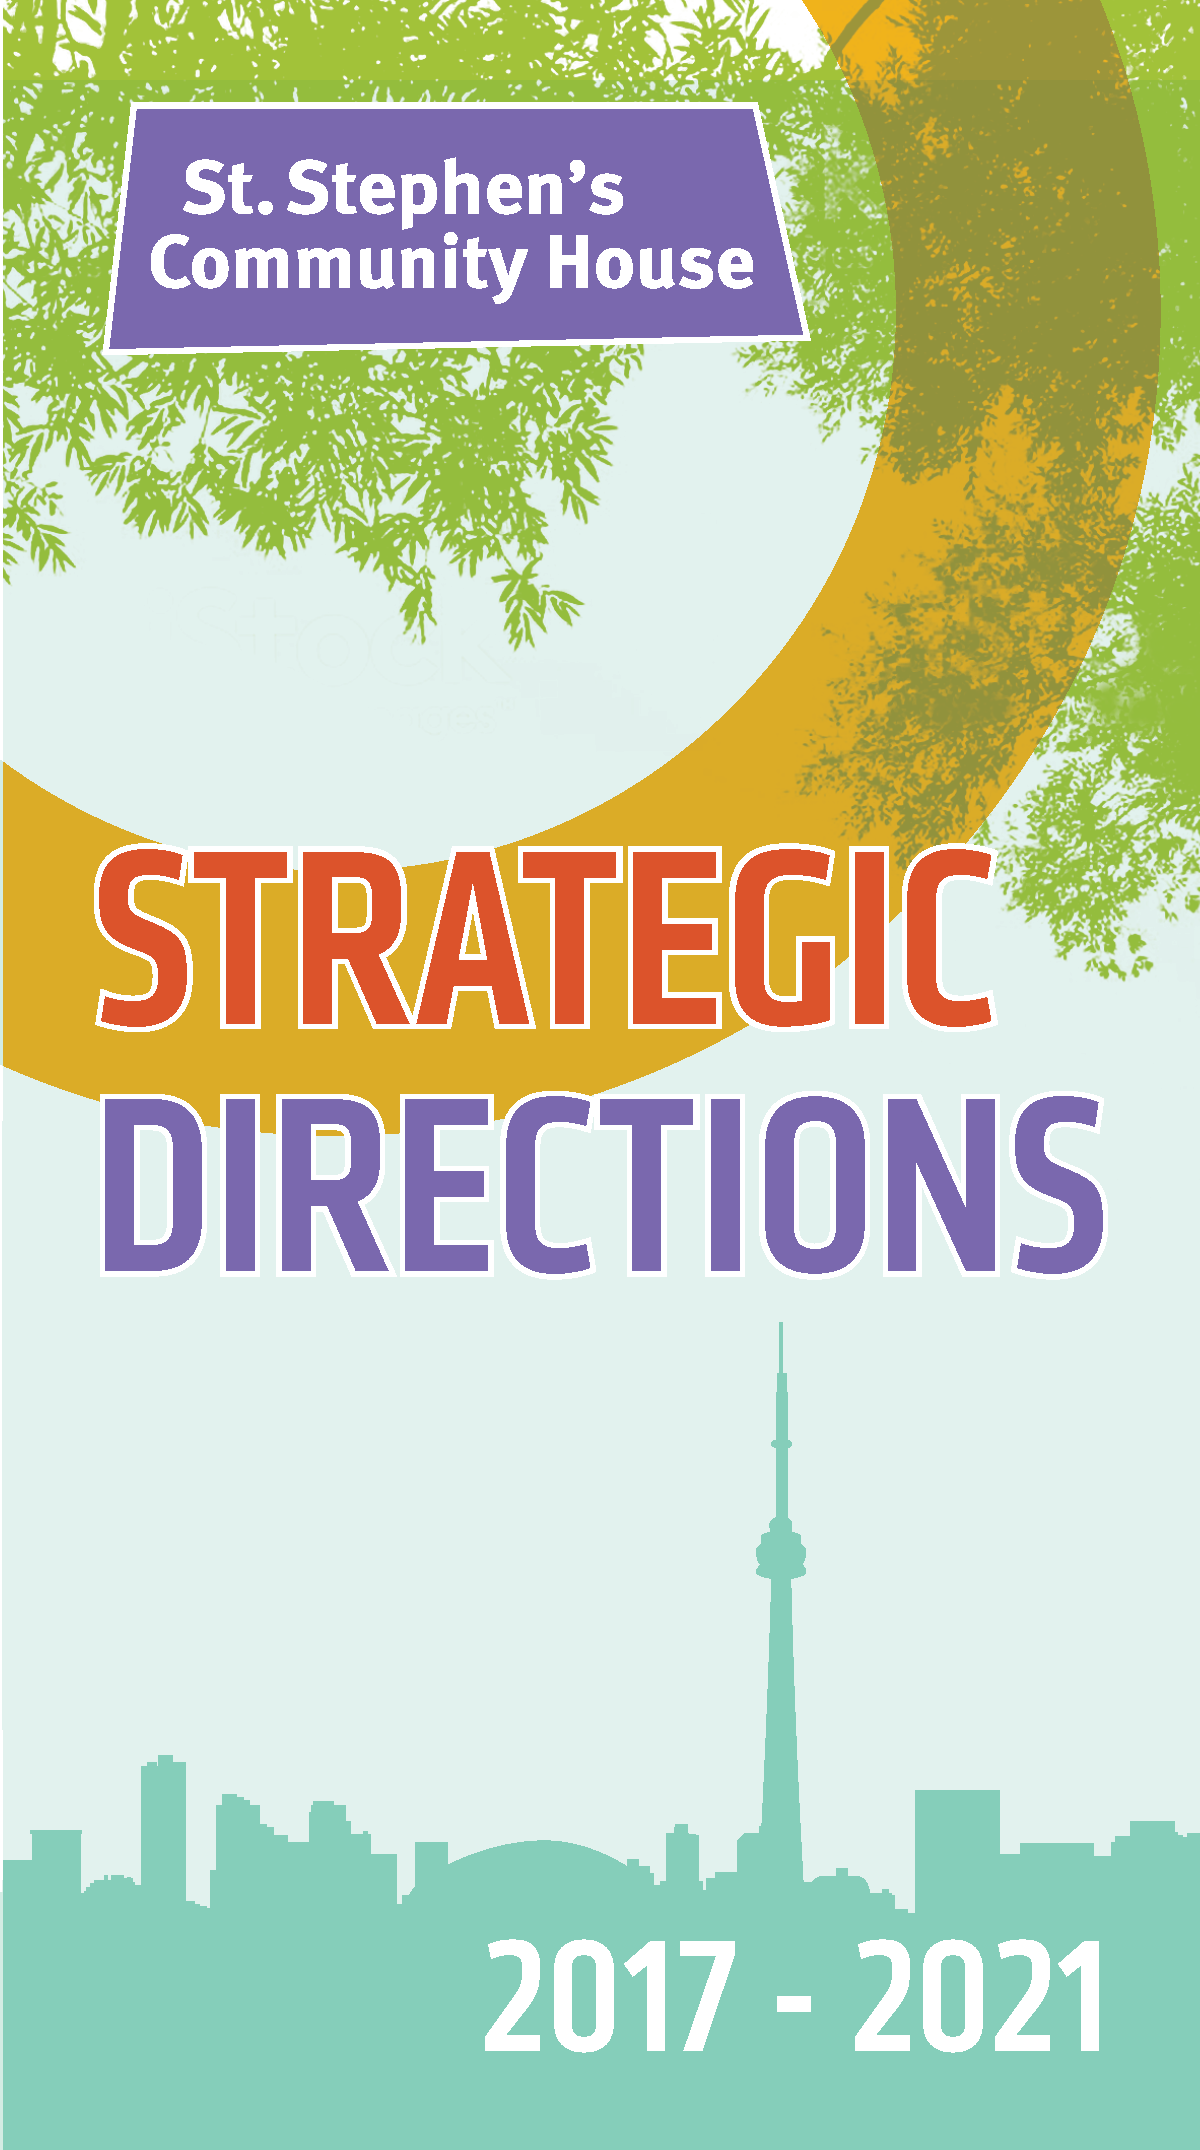 Strategic Directions 2017 - 2021